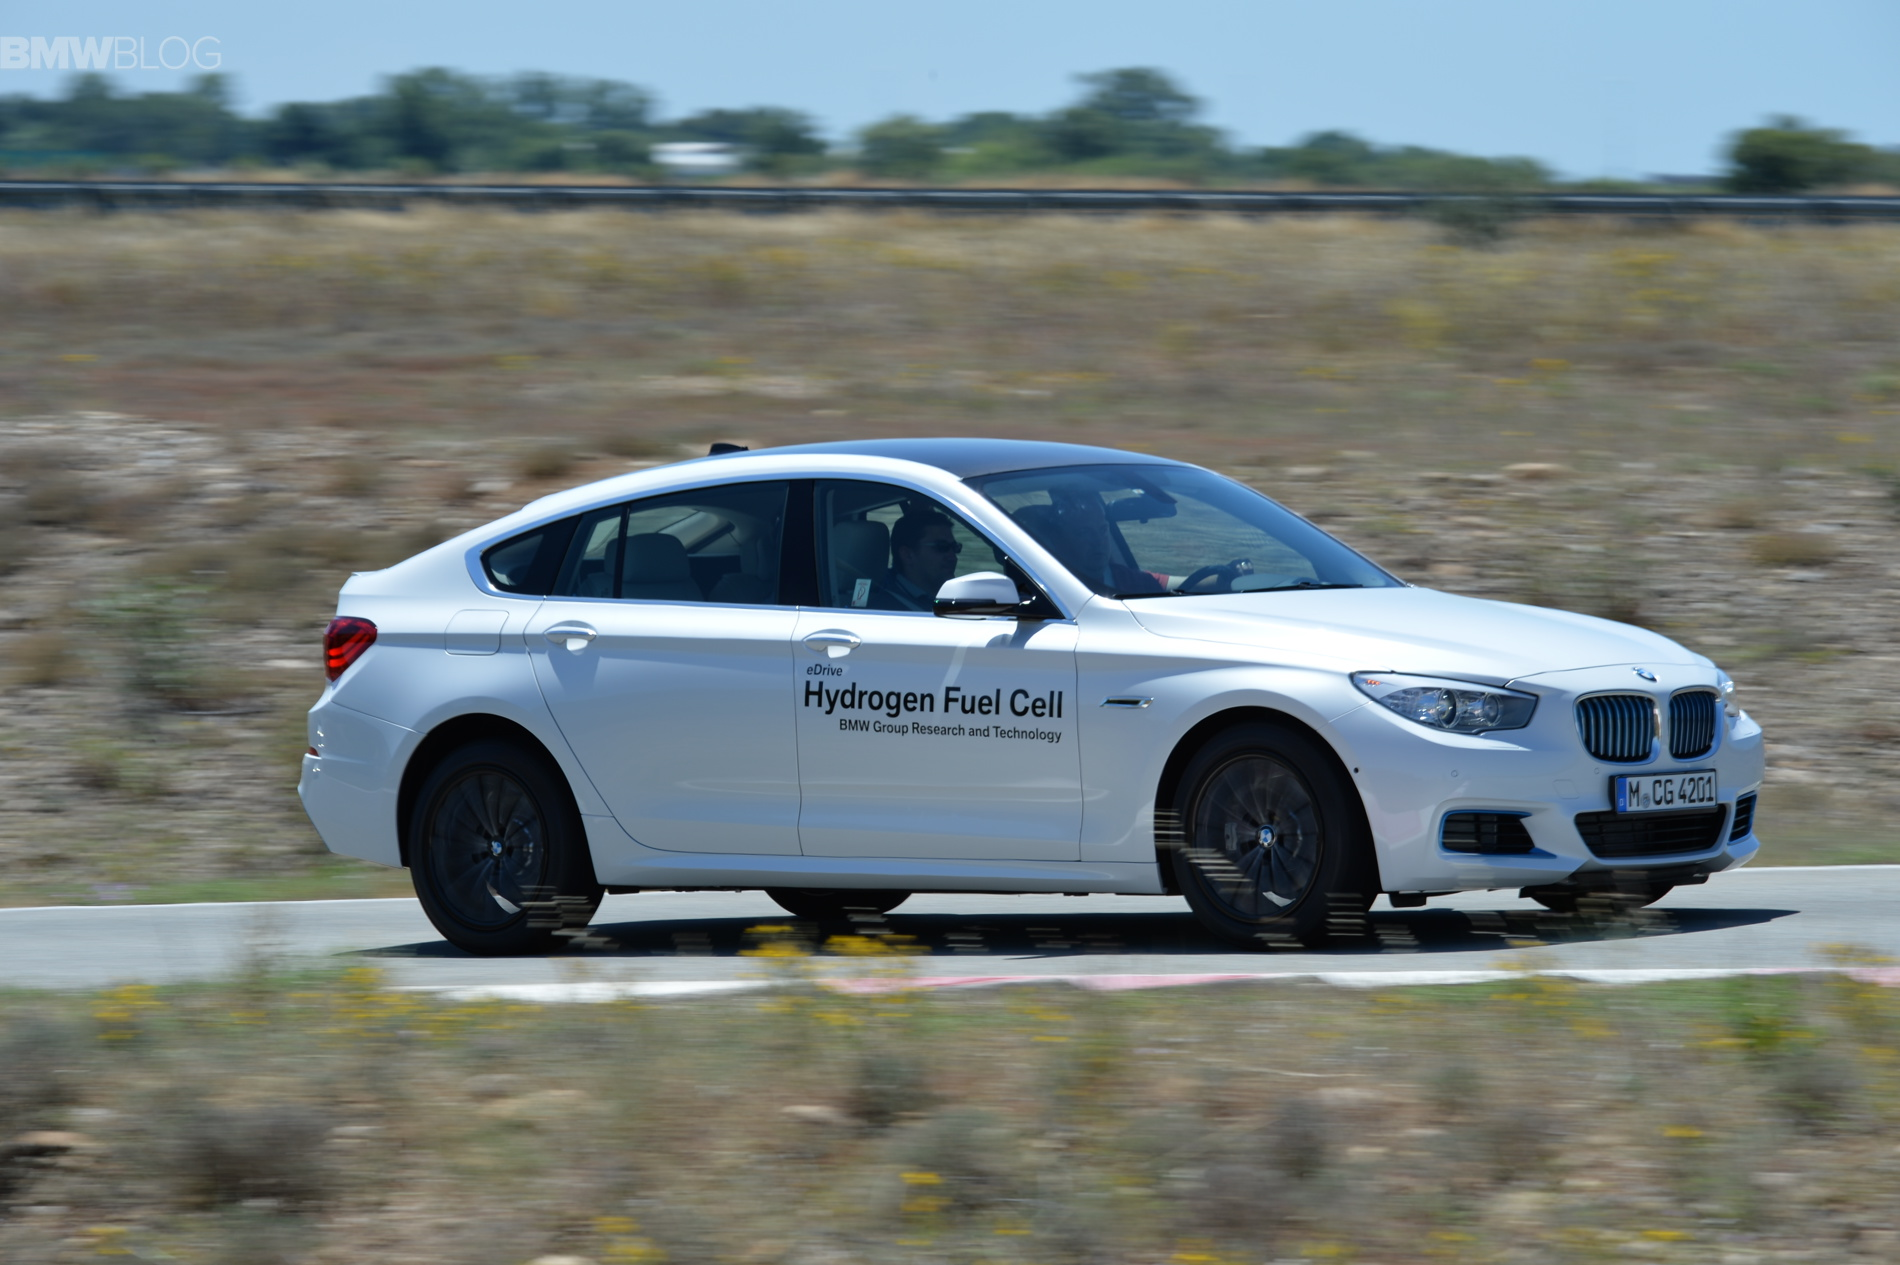 BMW 5 series gt hydrogen fuel cell images 45